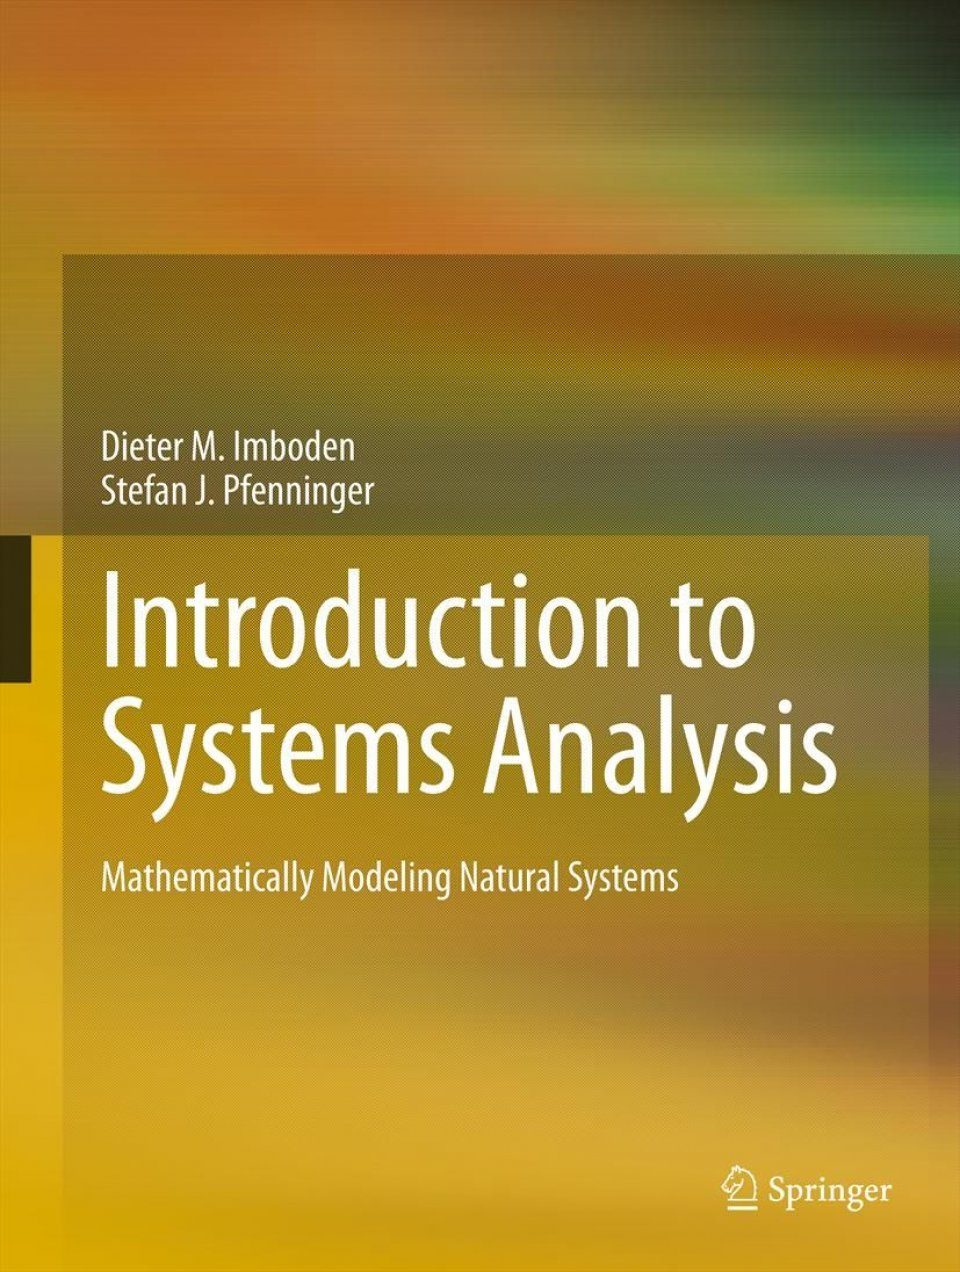 Introduction to Systems Analysis